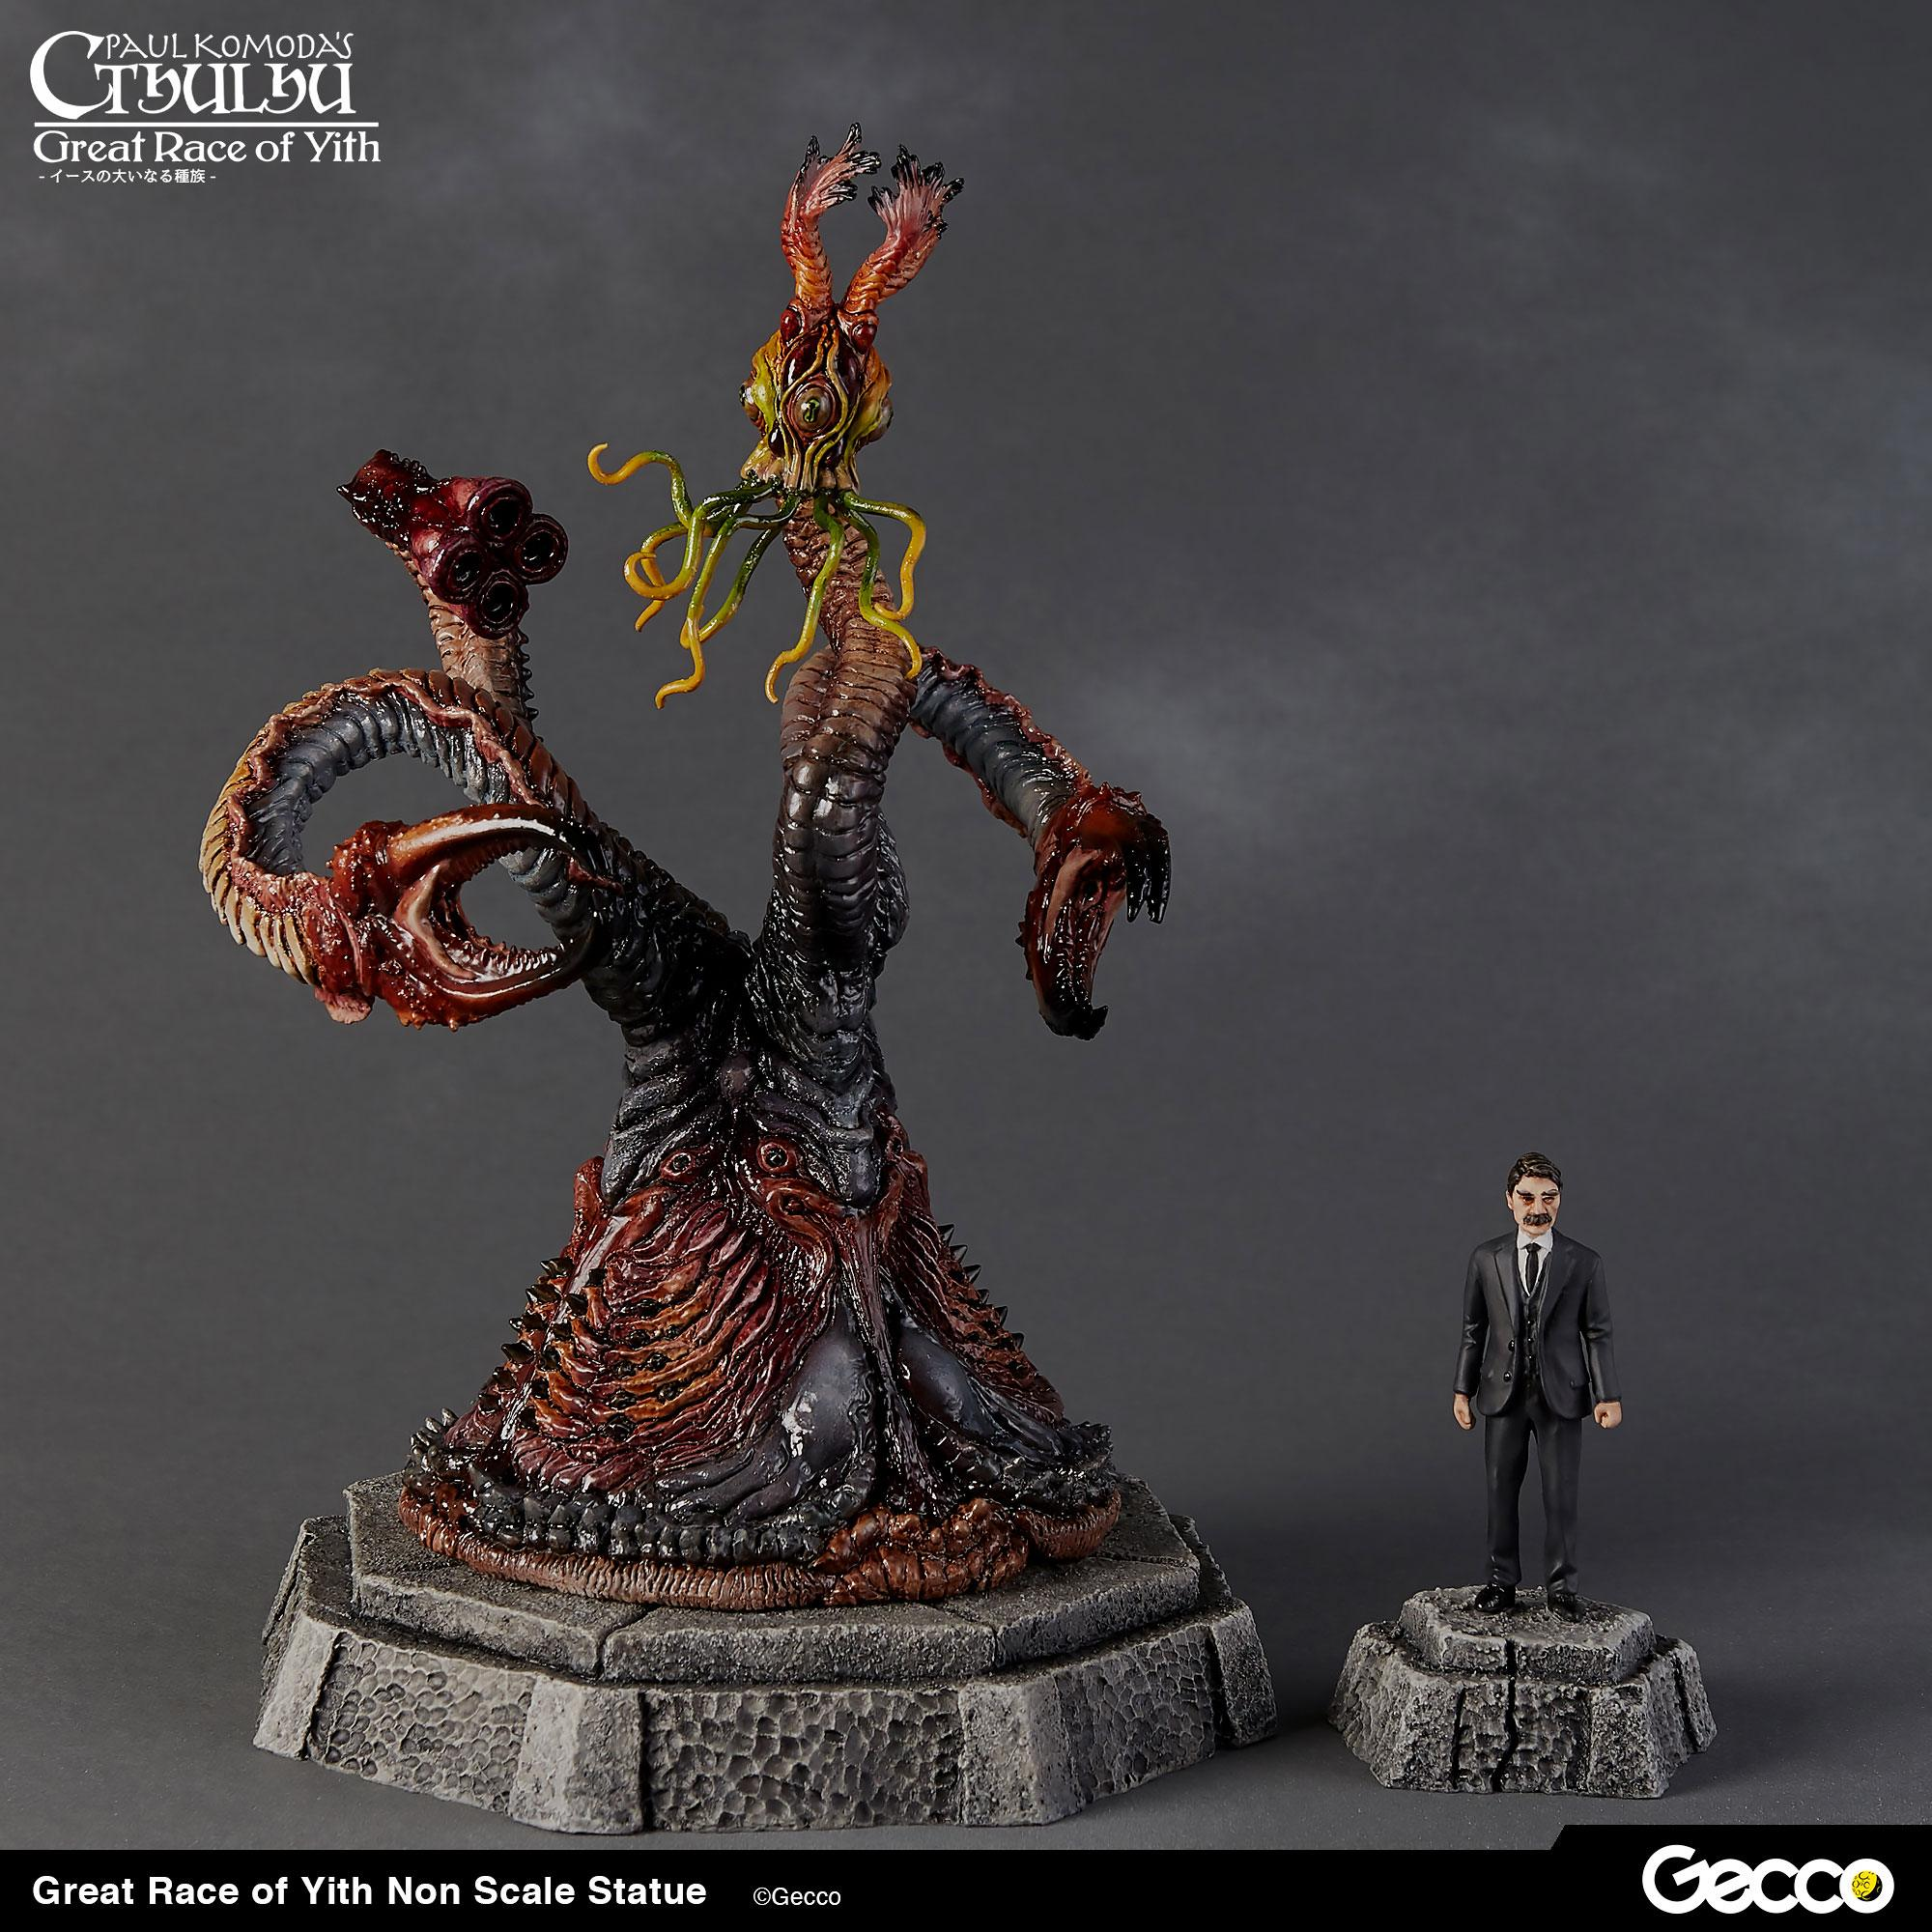 H.P. Lovecraft Cthulhu Mythos Statue Great Race of Yith 23 cm - Animegami Store